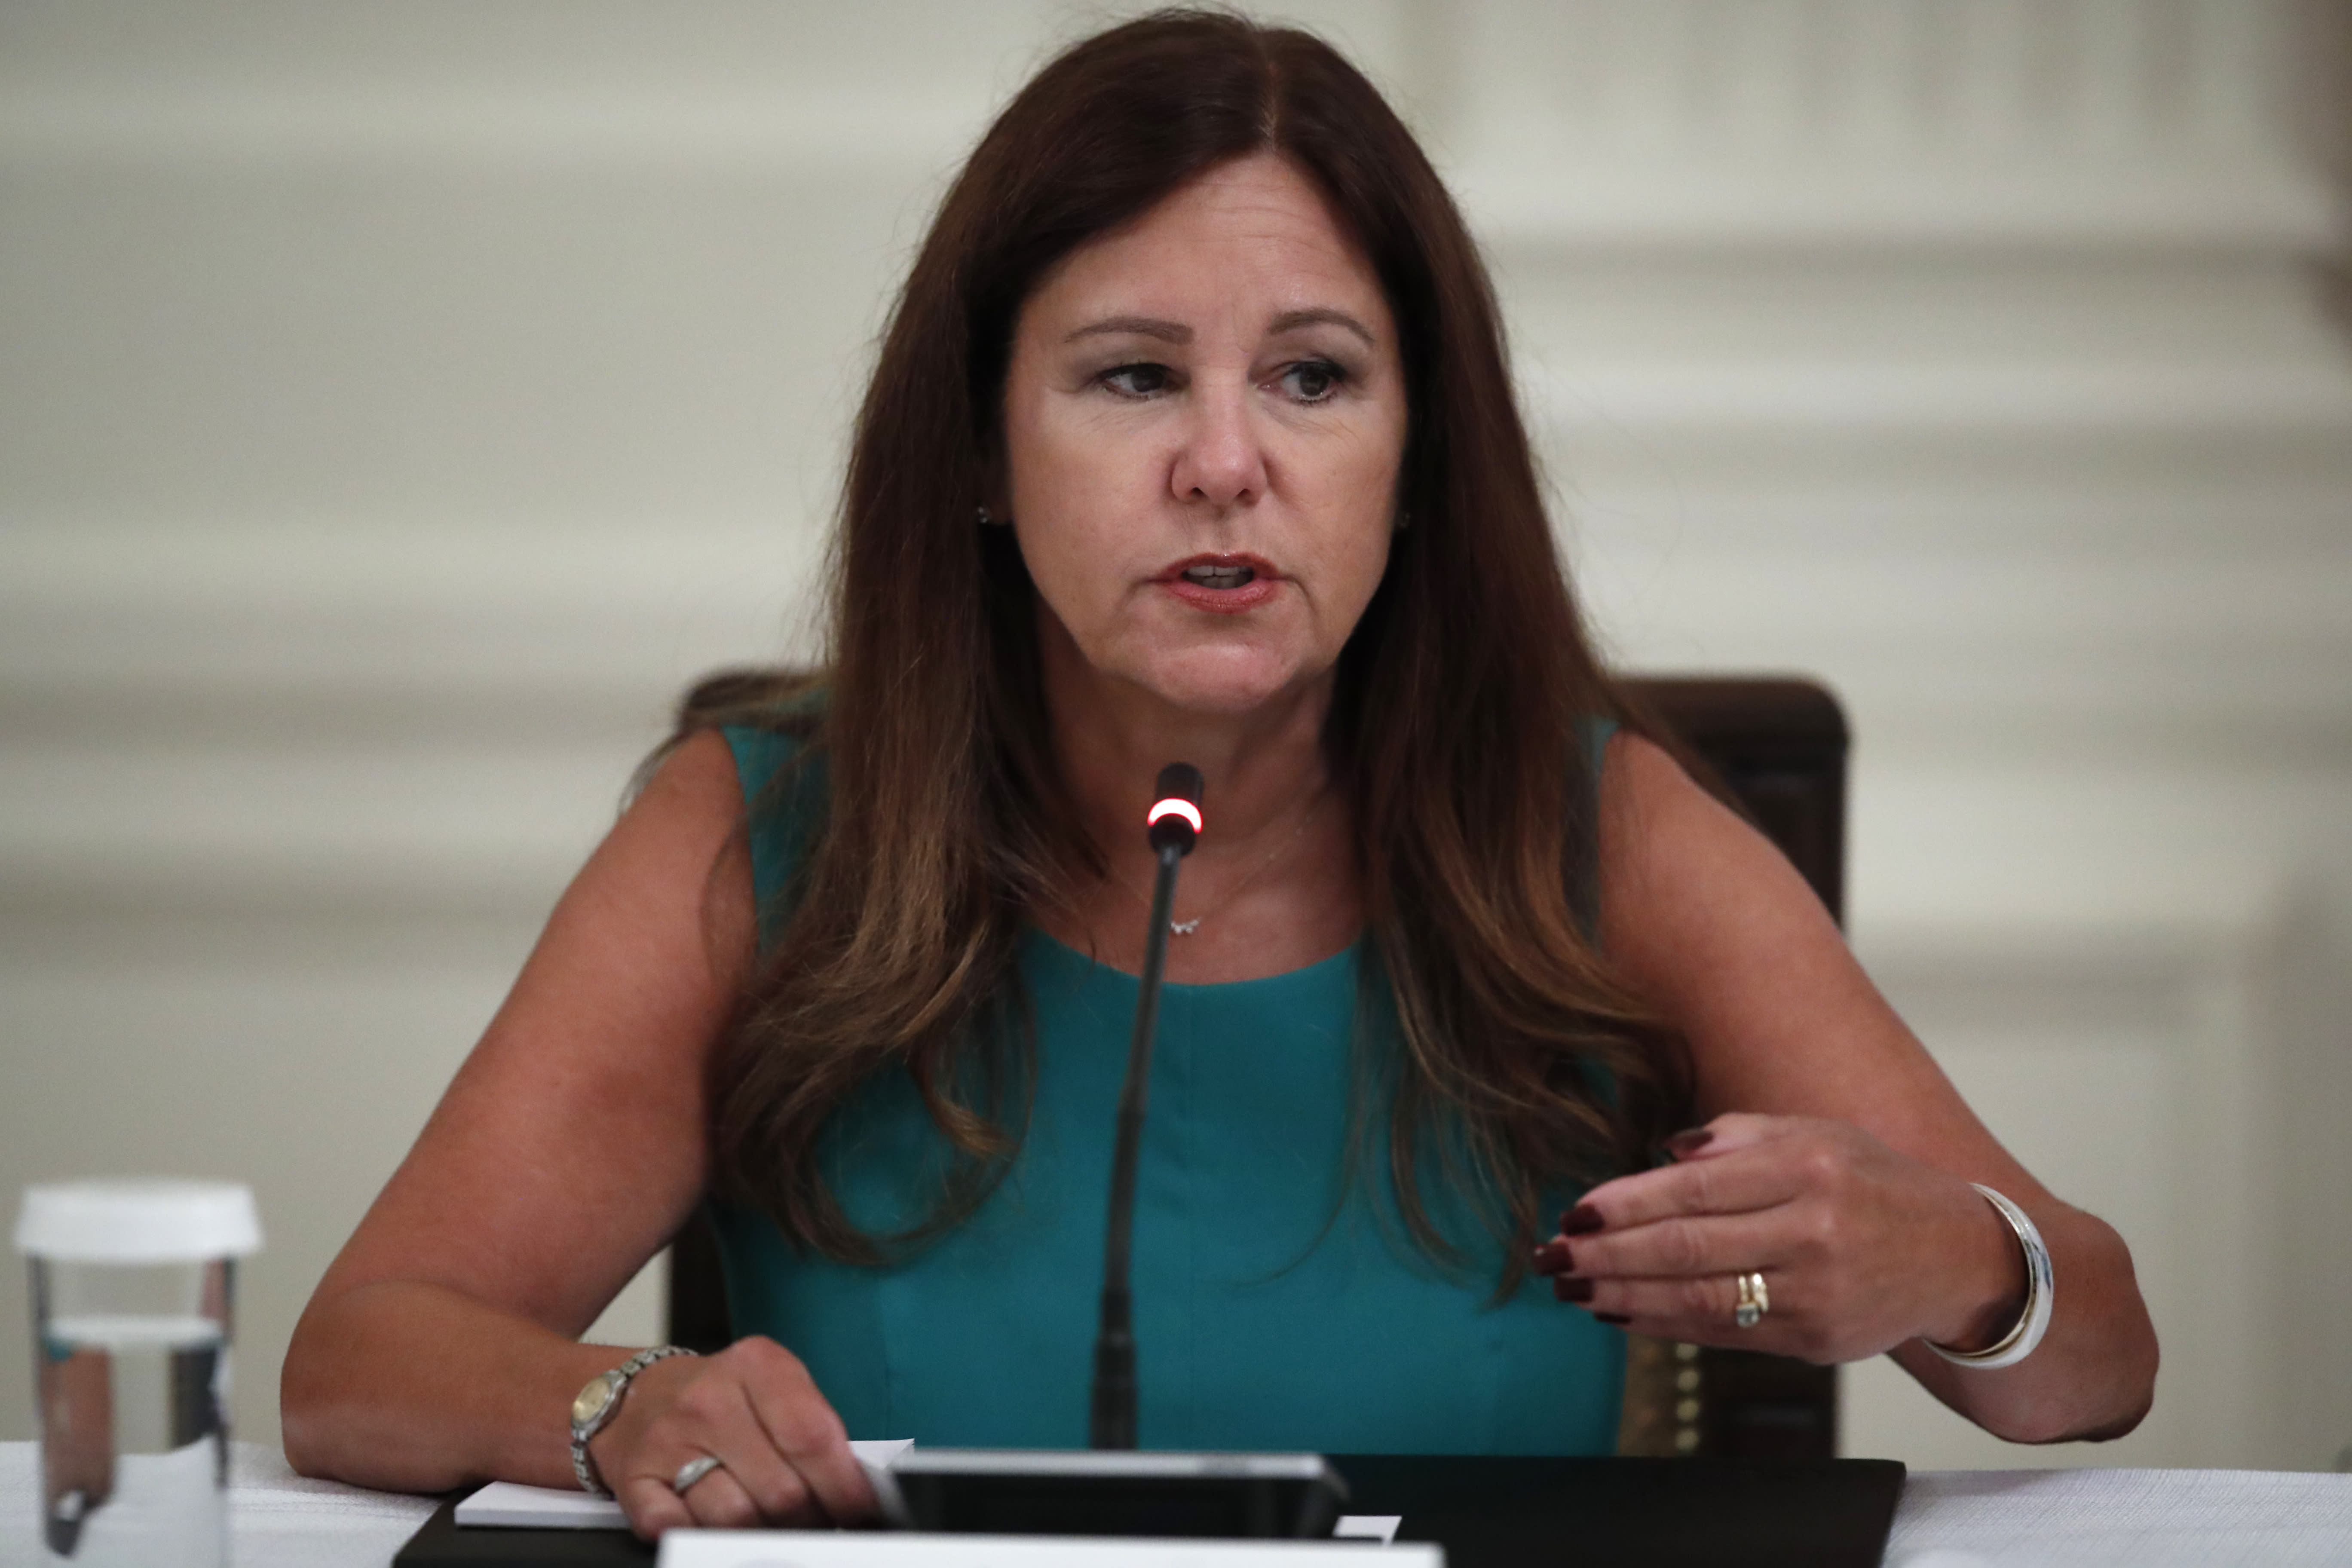 """Second lady Karen Pence speaks during a """"National Dialogue on Safely Reopening America's Schools,"""" event in the East Room of the White House, Tuesday, July 7, 2020, in Washington. (AP Photo/Alex Brandon)"""